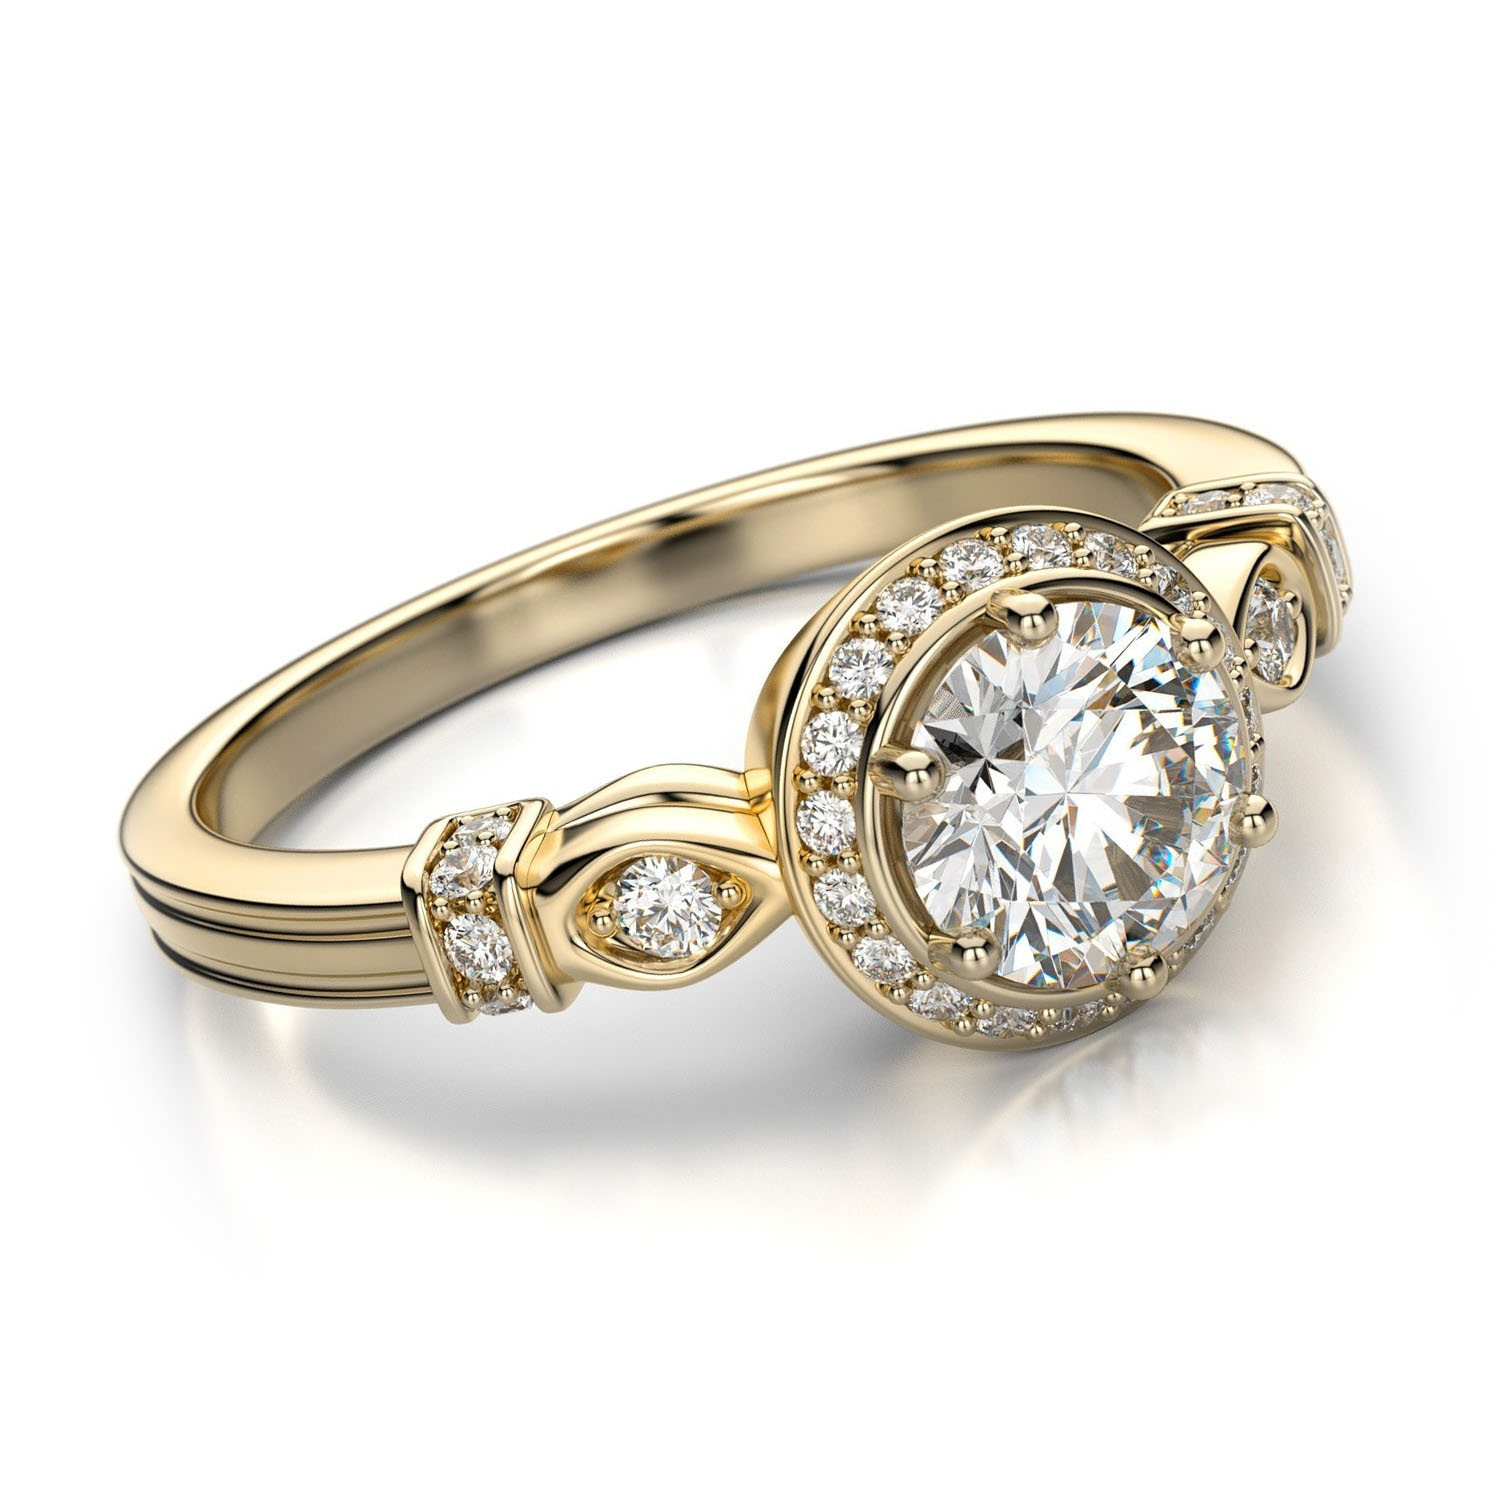 Vintage Diamond Engagement Rings For Women With Recent Vintage Style Gold Engagement Rings (Gallery 12 of 15)